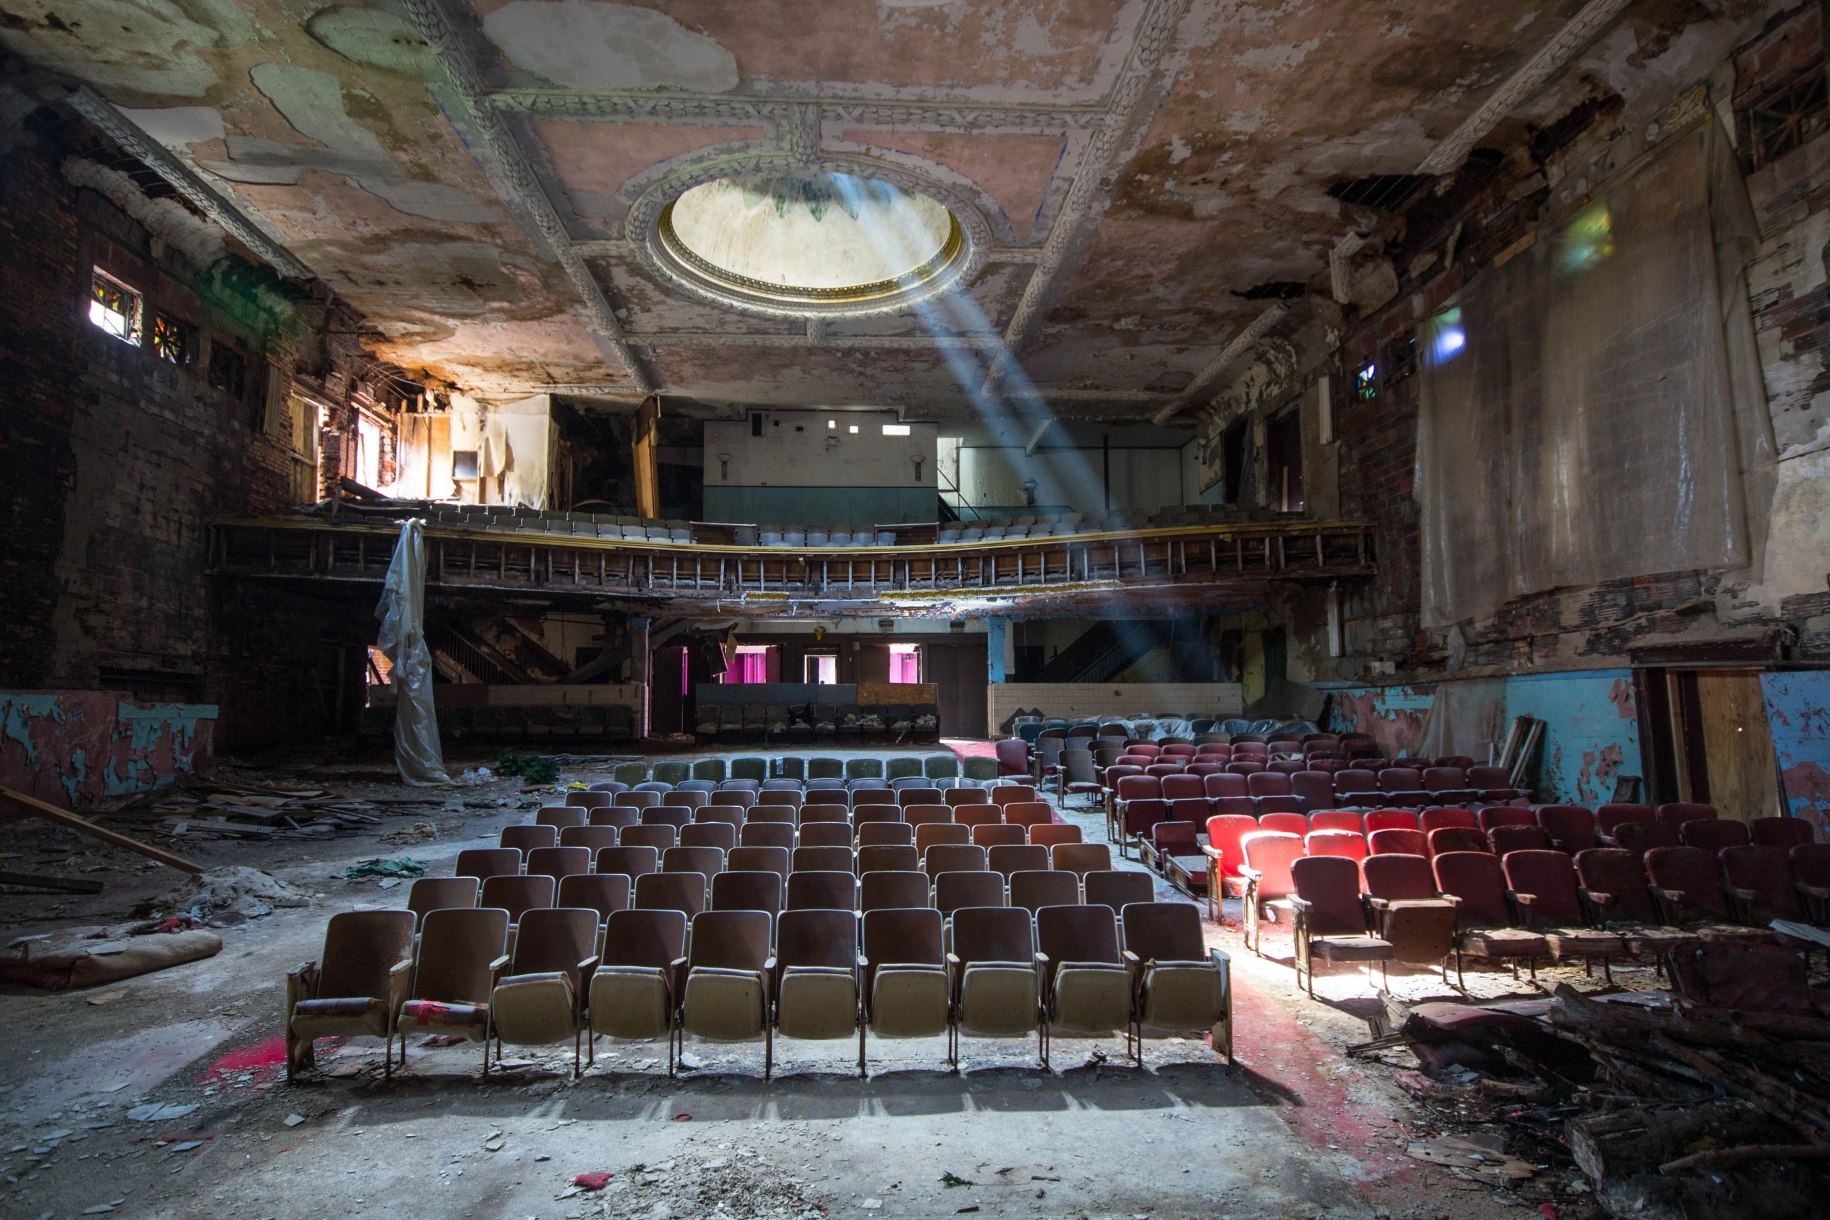 The Sattler / Broadway Theater in Buffalo, NY. Image by Liz at Peeling Walls.